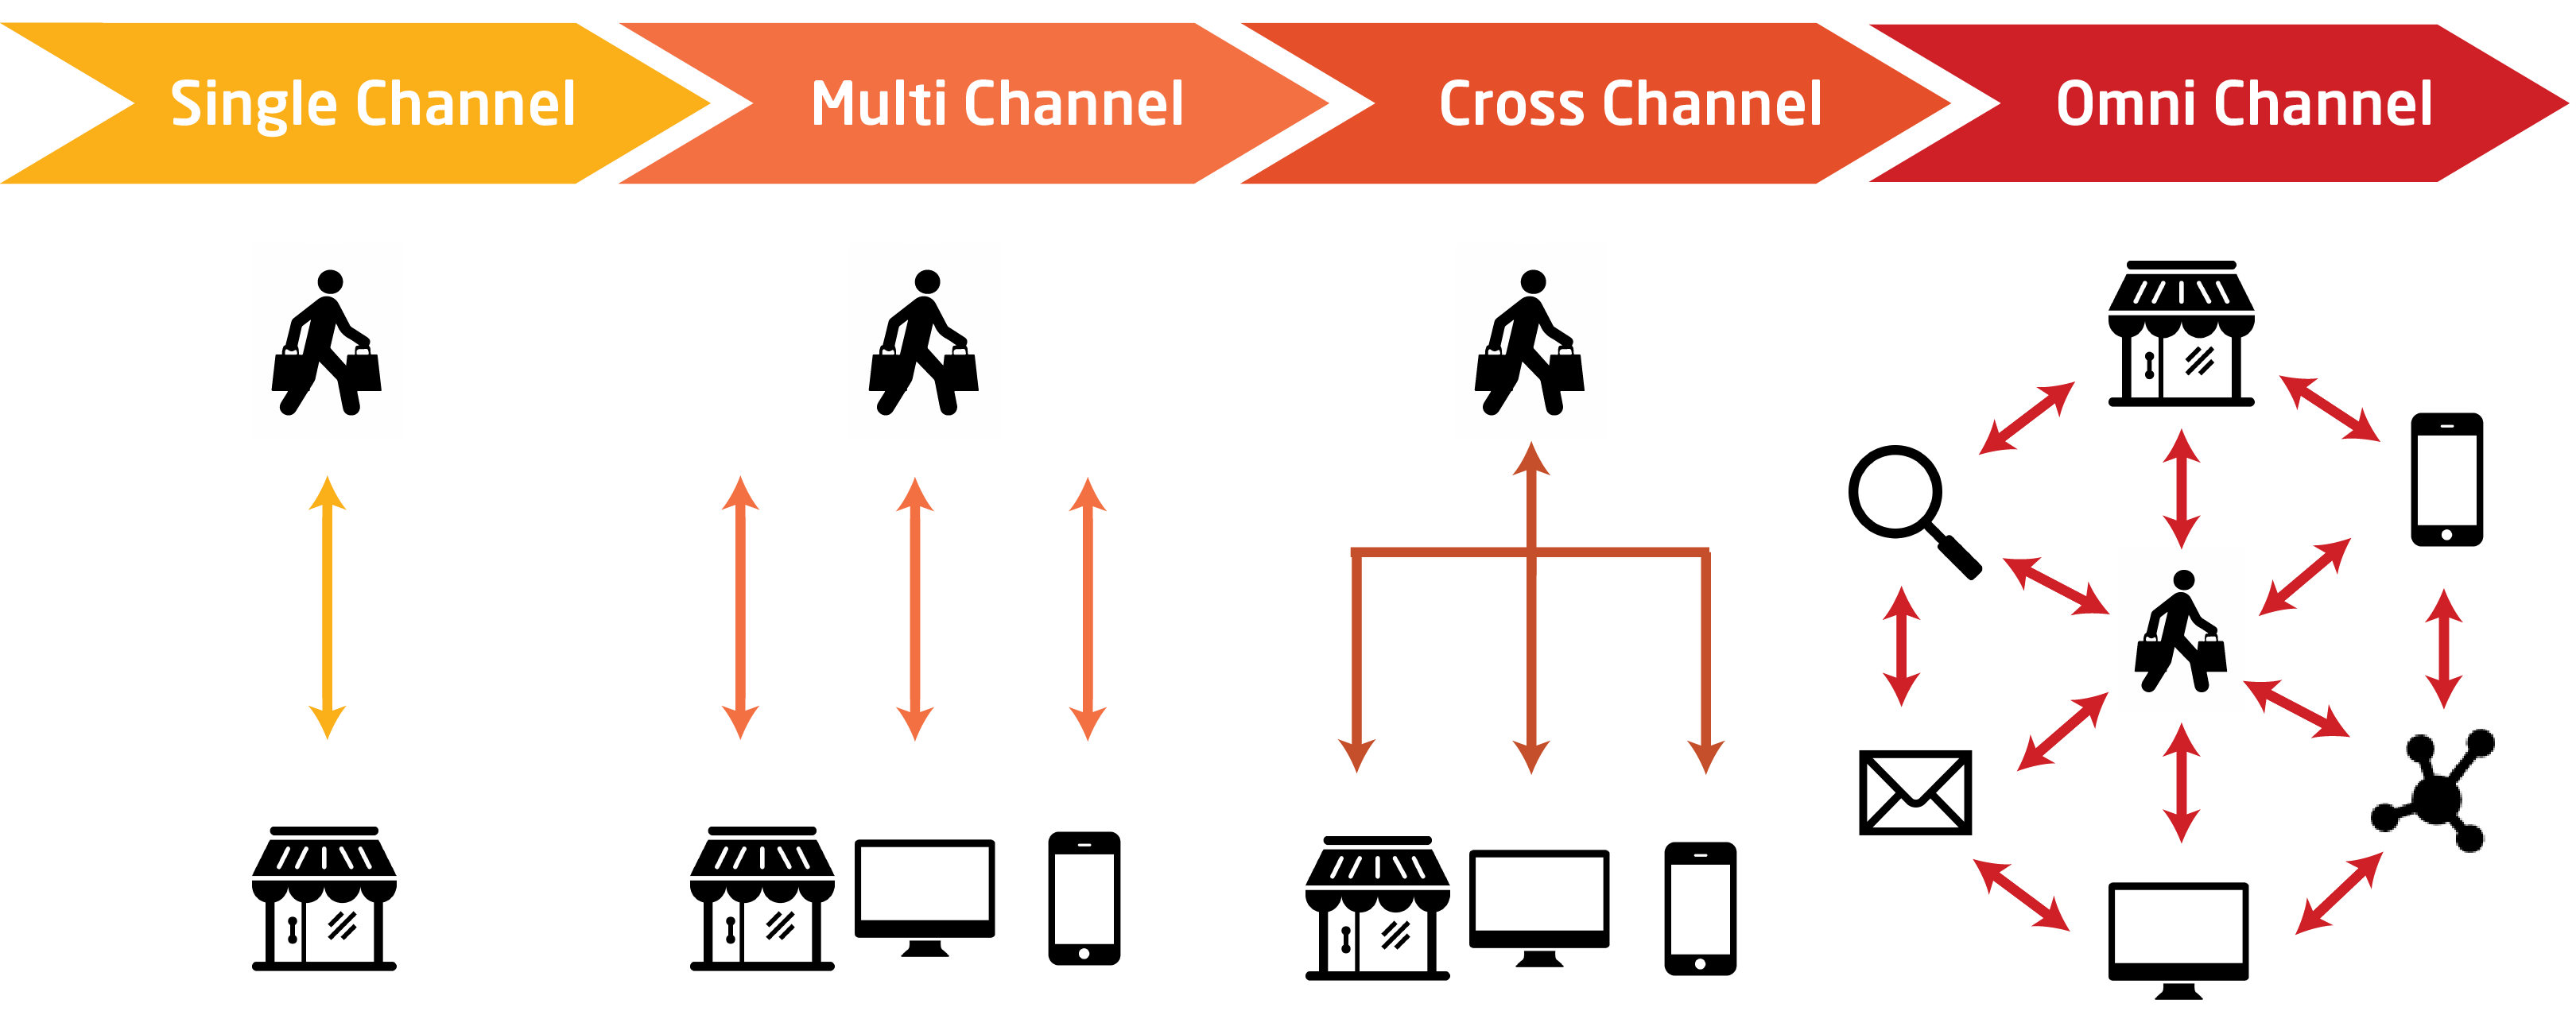 parcours-multicanal-crosscanal-omnicanal